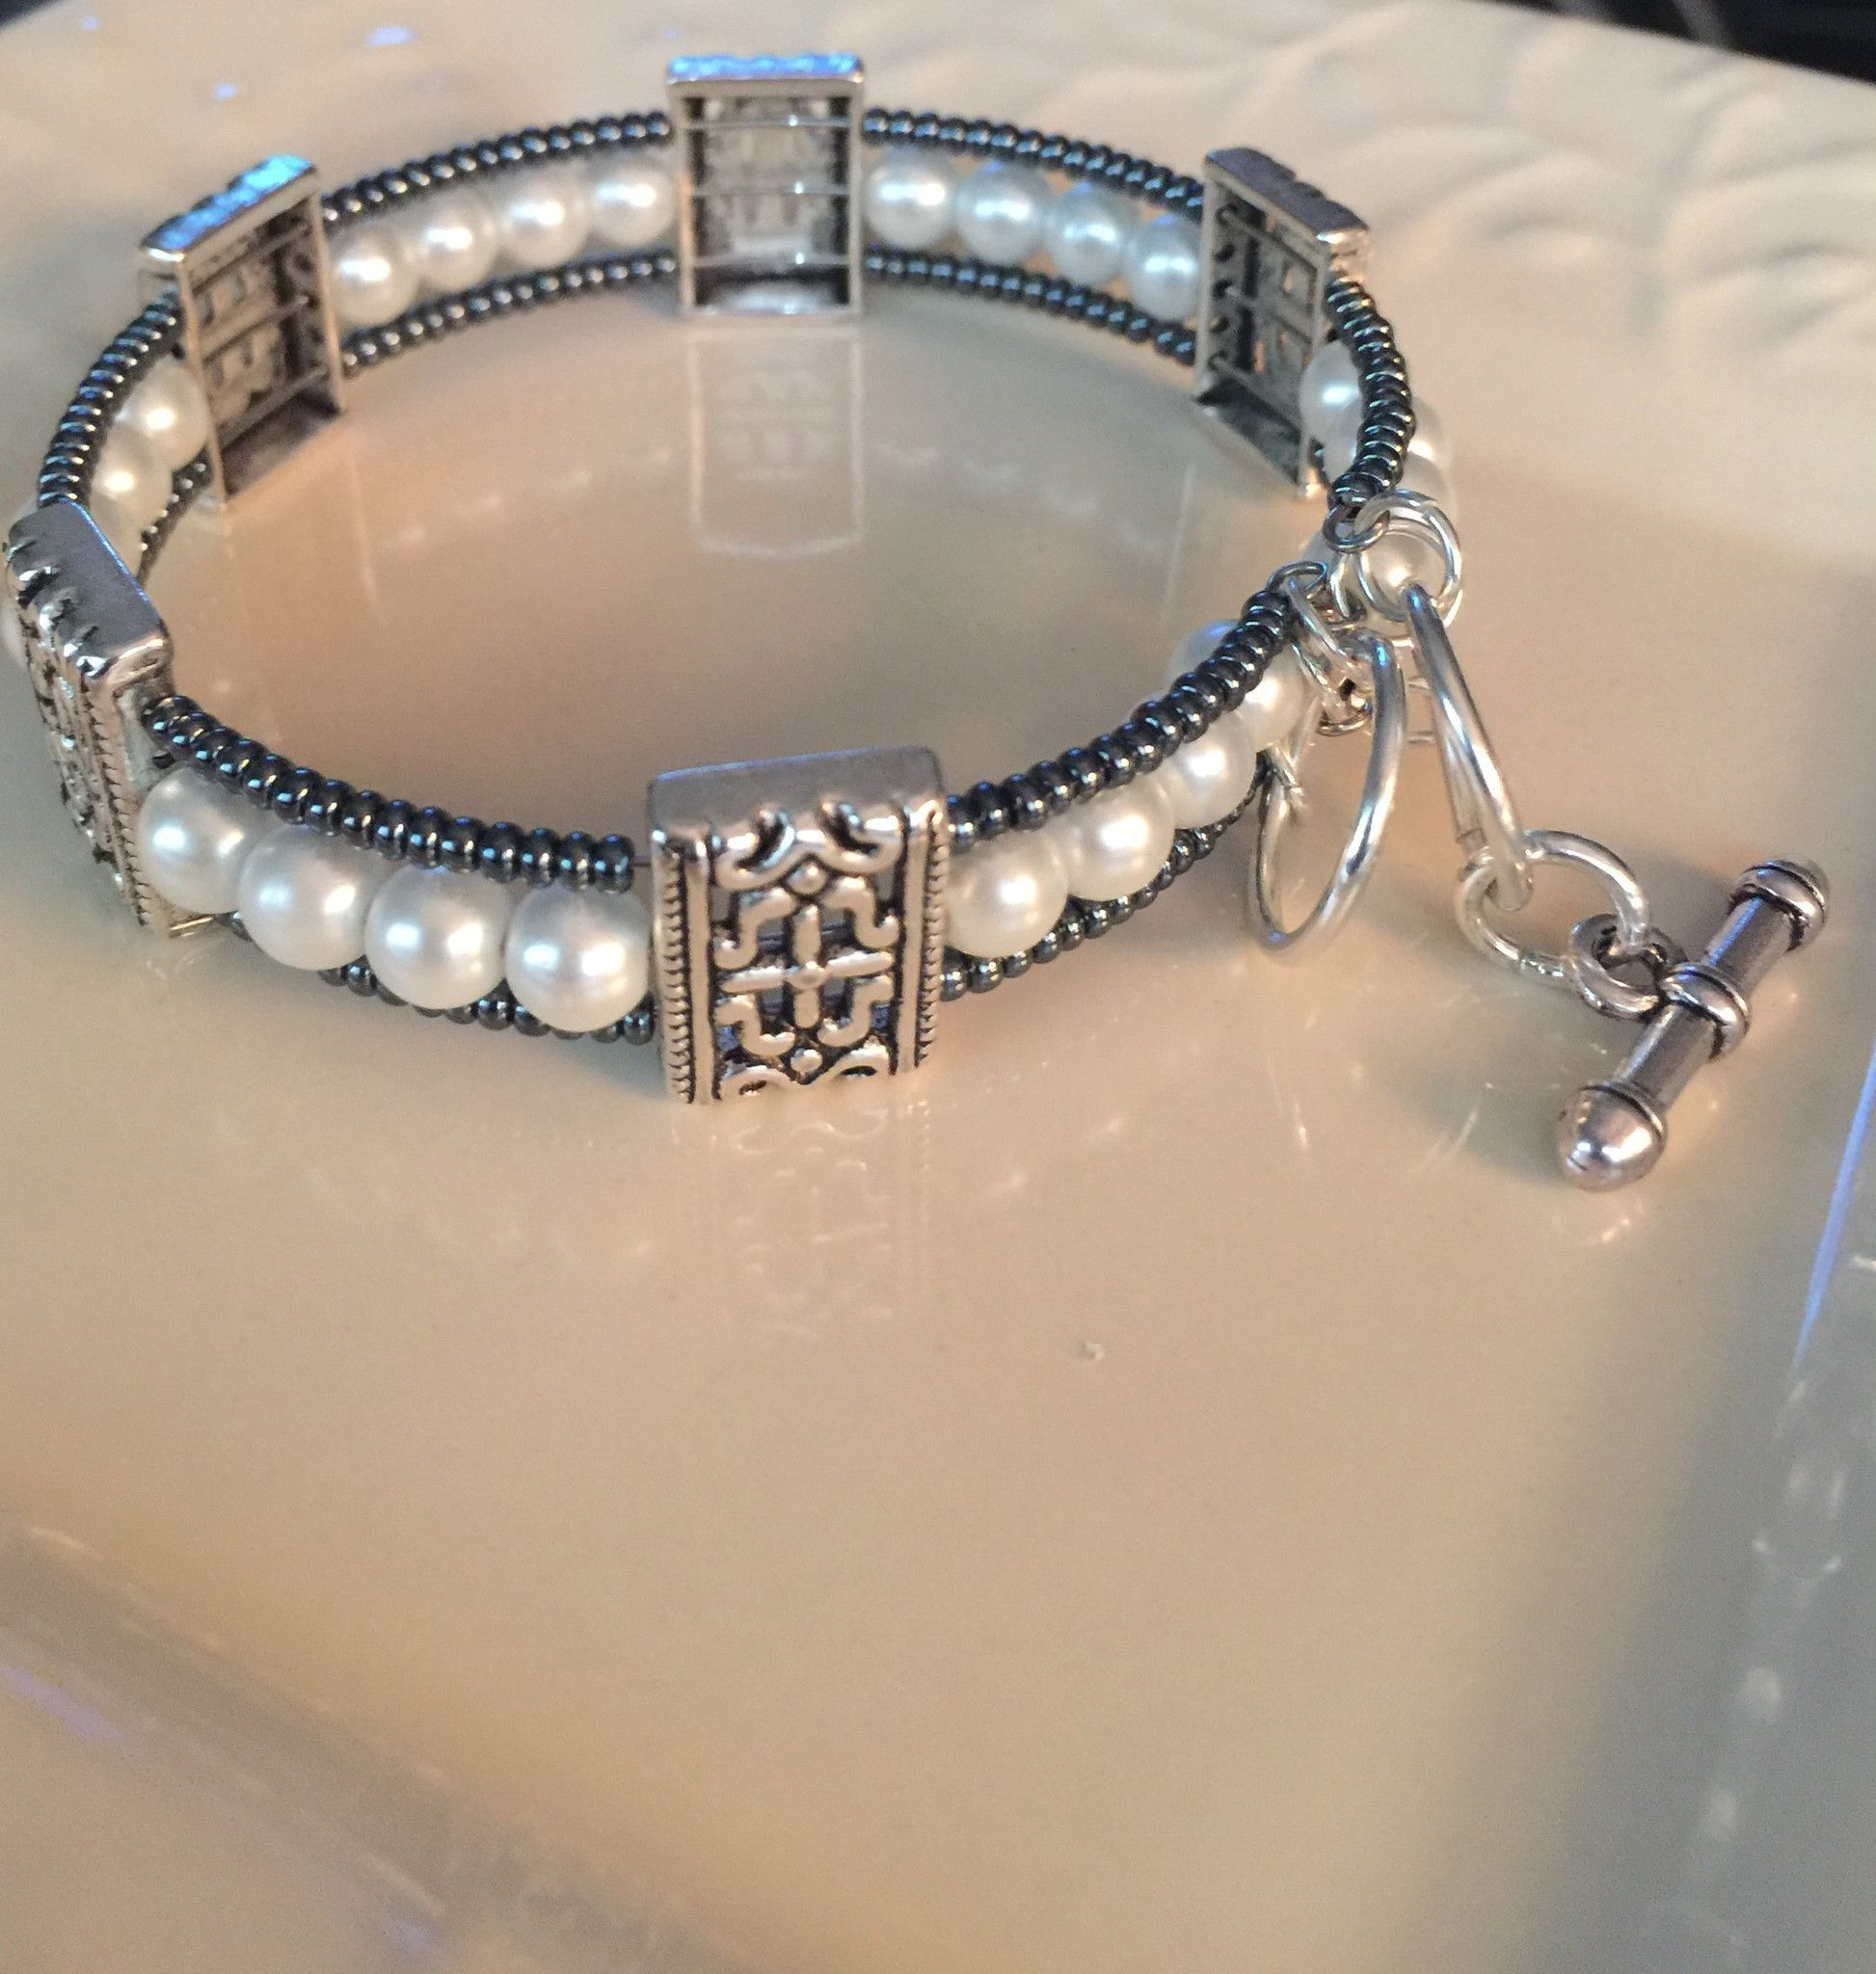 All jewelry is handcrafted with glass beads and silver plated accents. - Bracelets are made with a memory wire material and easy clasp closure, so it will fit all wrist sizes comfortably.                                                                                                                                                     More